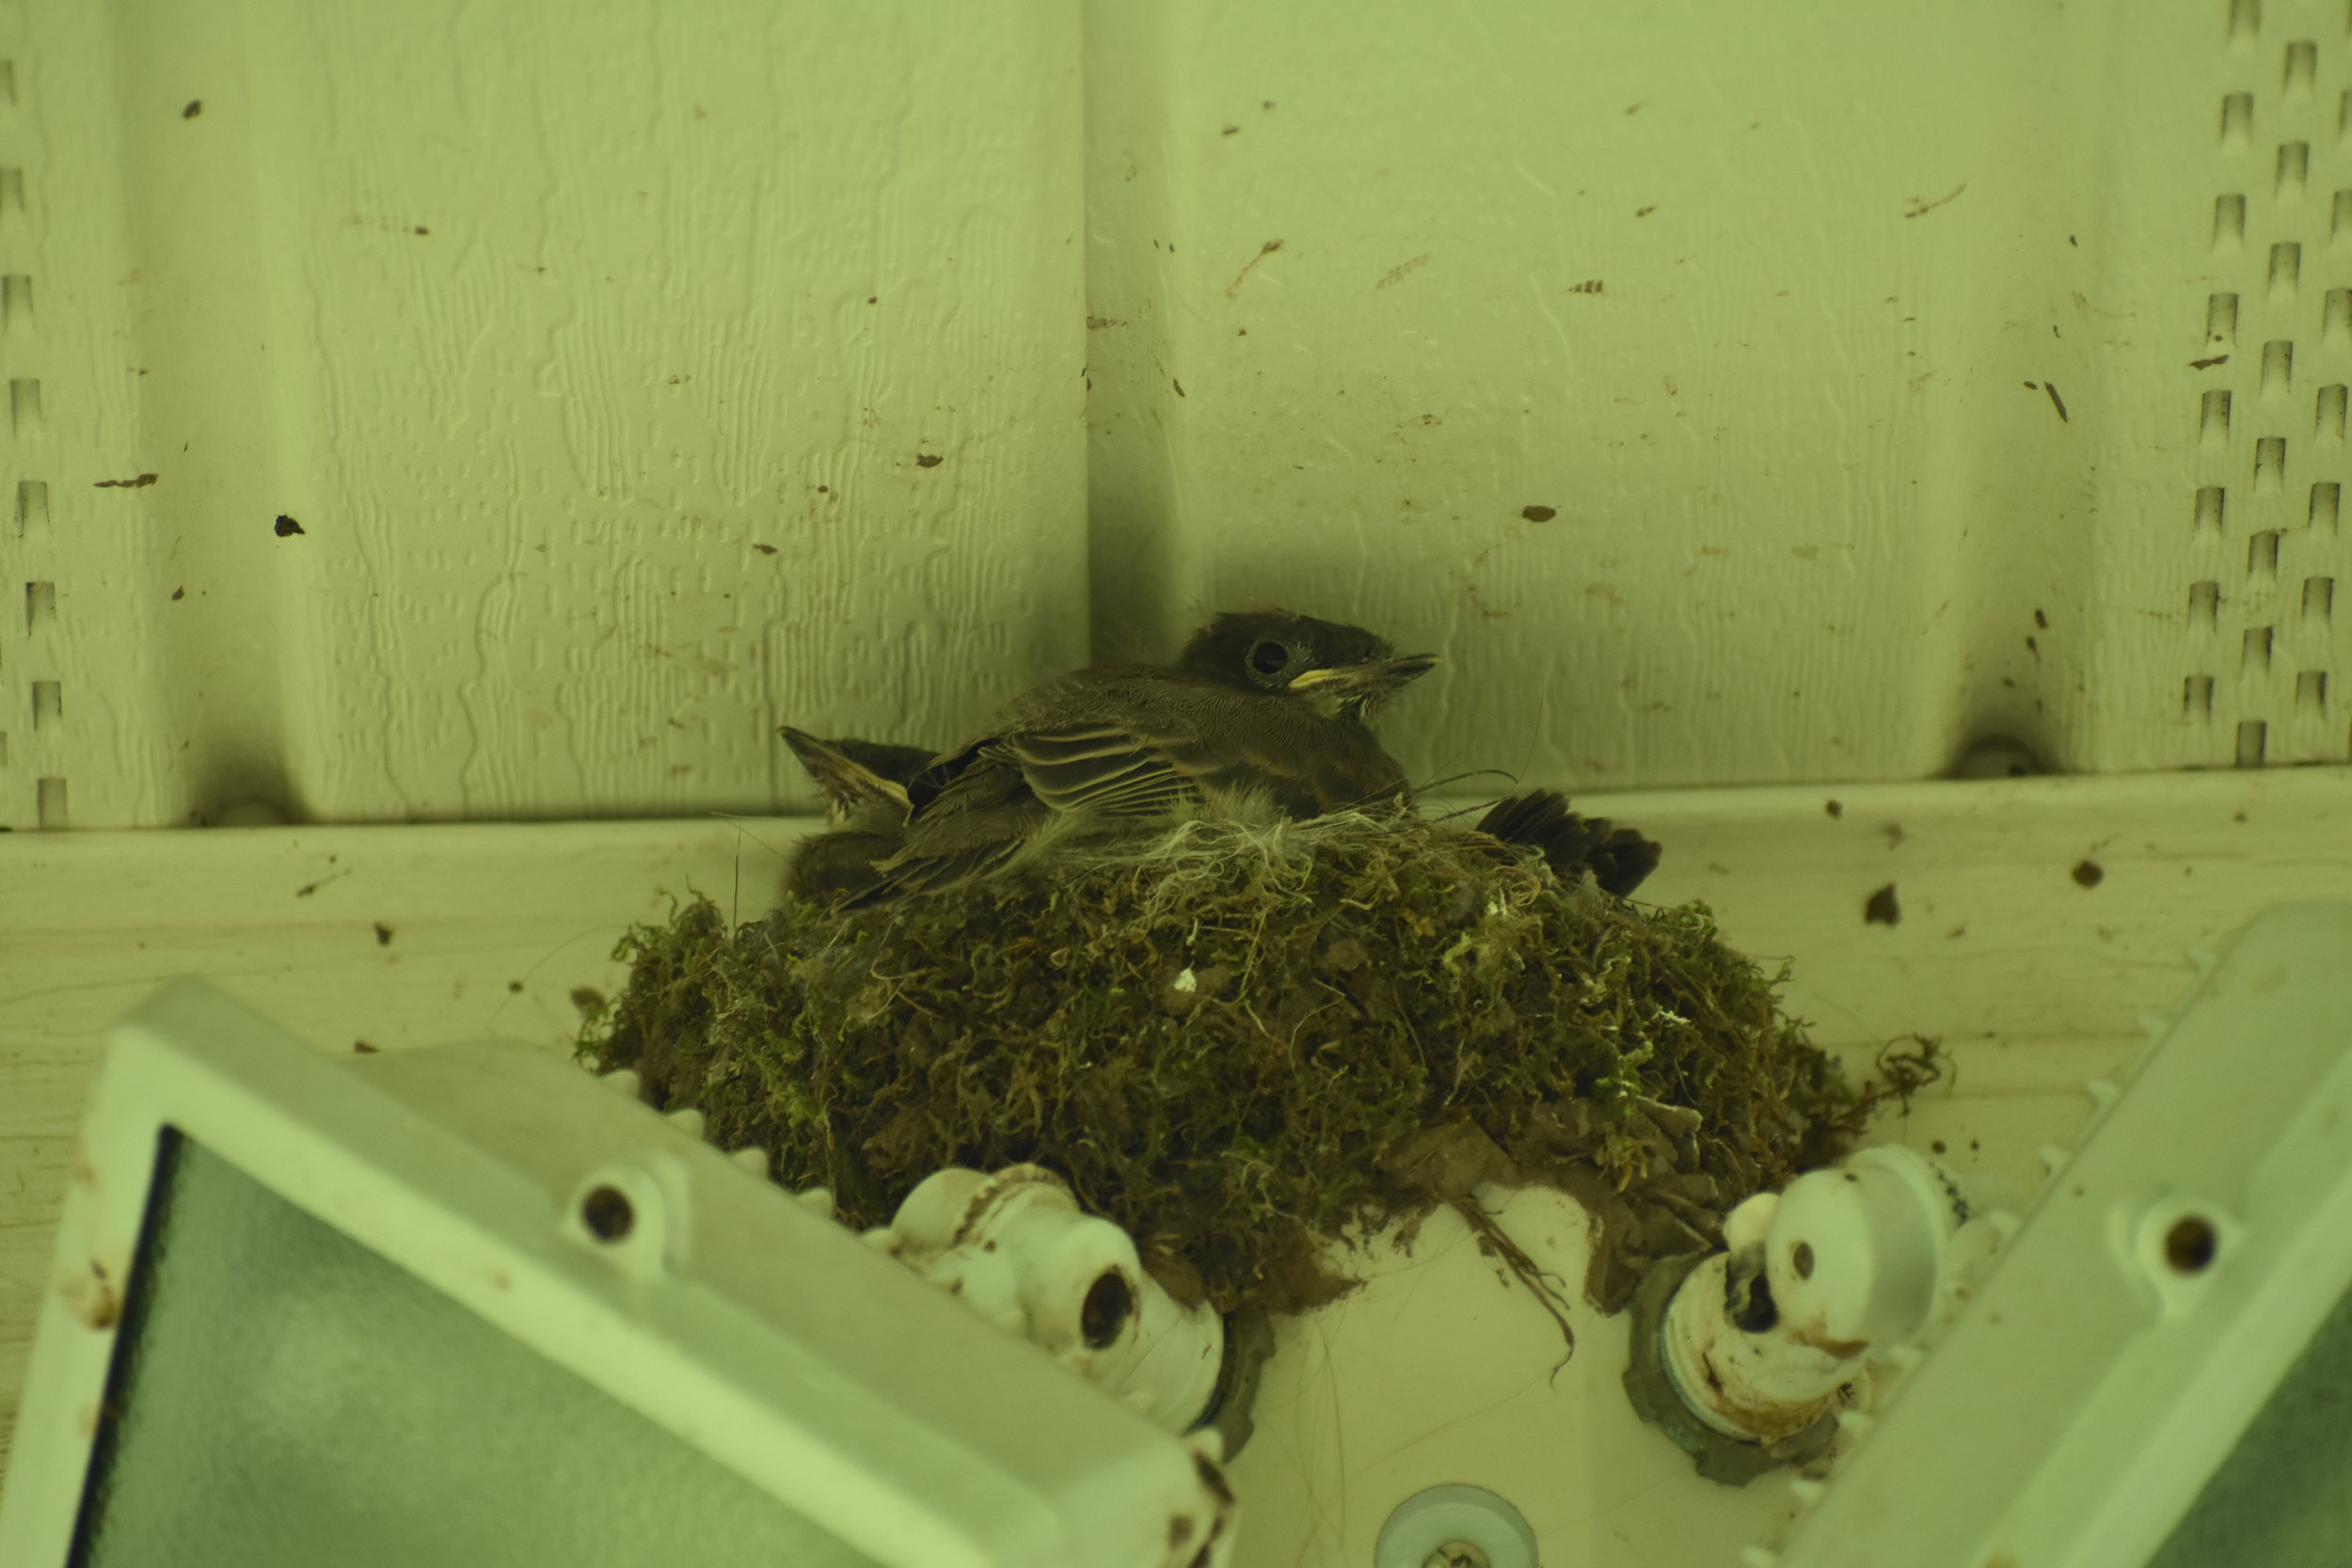 Eastern Phoebe in nest, located under eave of building